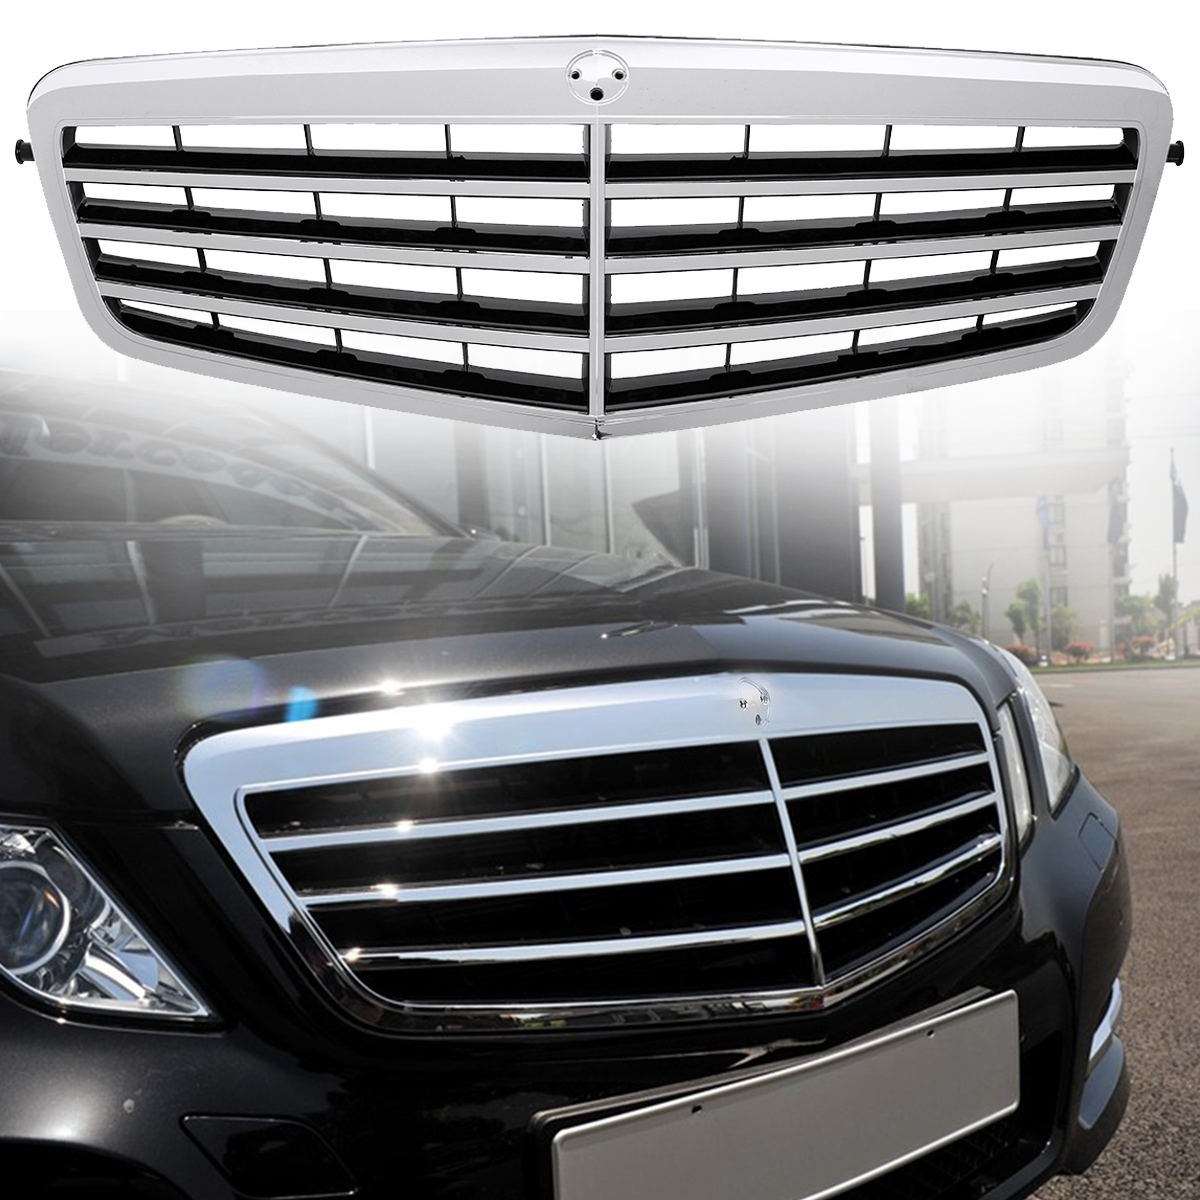 Chrome Auto Front Grill Grille Mesh For Mercedes Benz B: Chrome Black Front Bumper Upper Hood Mesh Grill Fits For